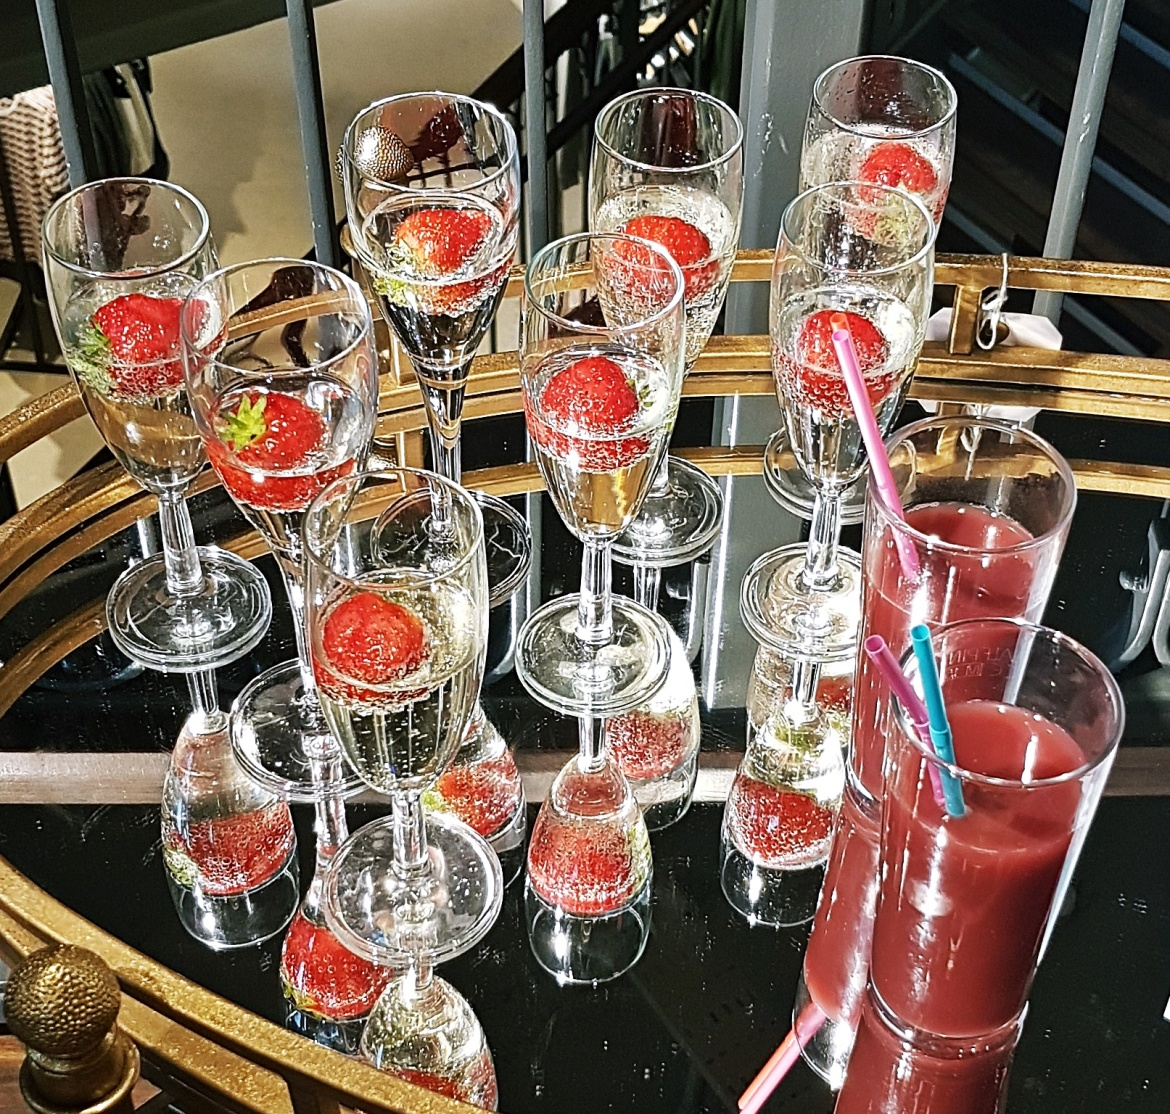 Prosecco and strawberries juice - Tune in with Joy the Store, Leeds shop review by BeckyBecky Blogs